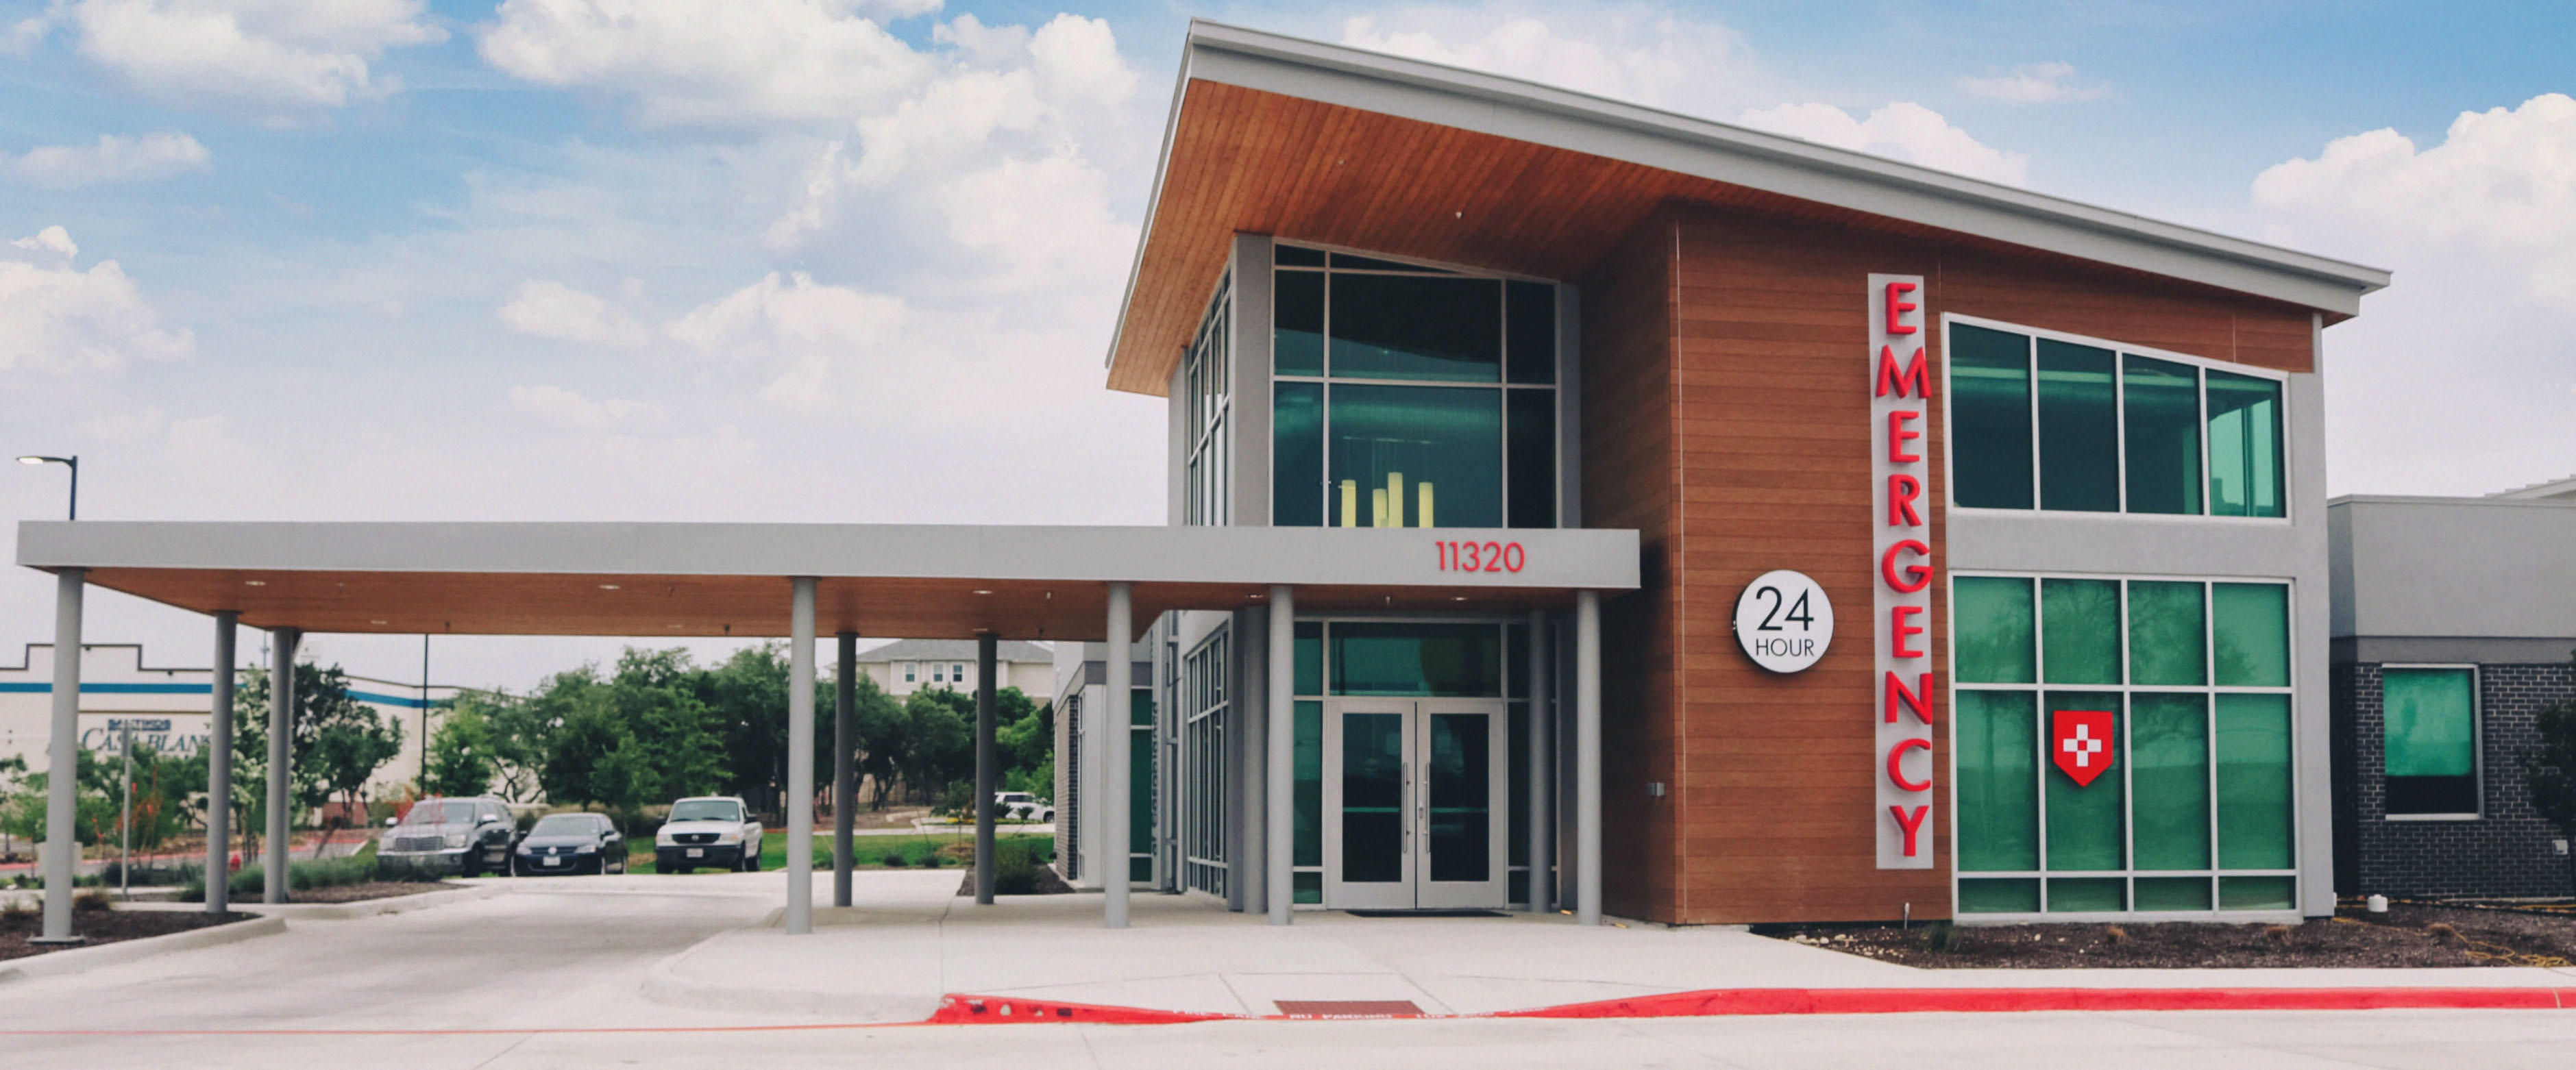 An exterior photo of The Emergency Center located in San Antonio.